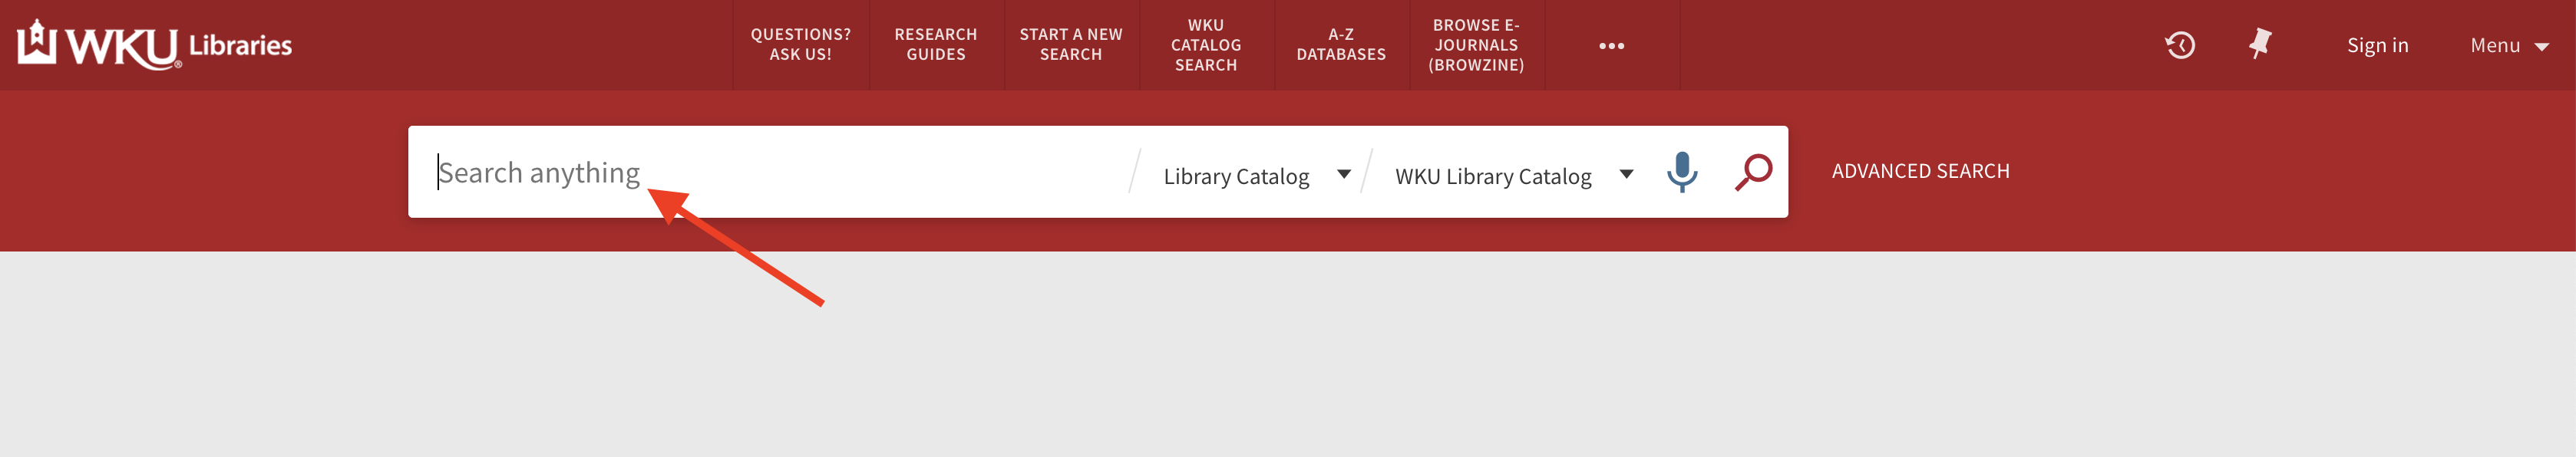 Screenshot of the search box on our WKU Libraries website